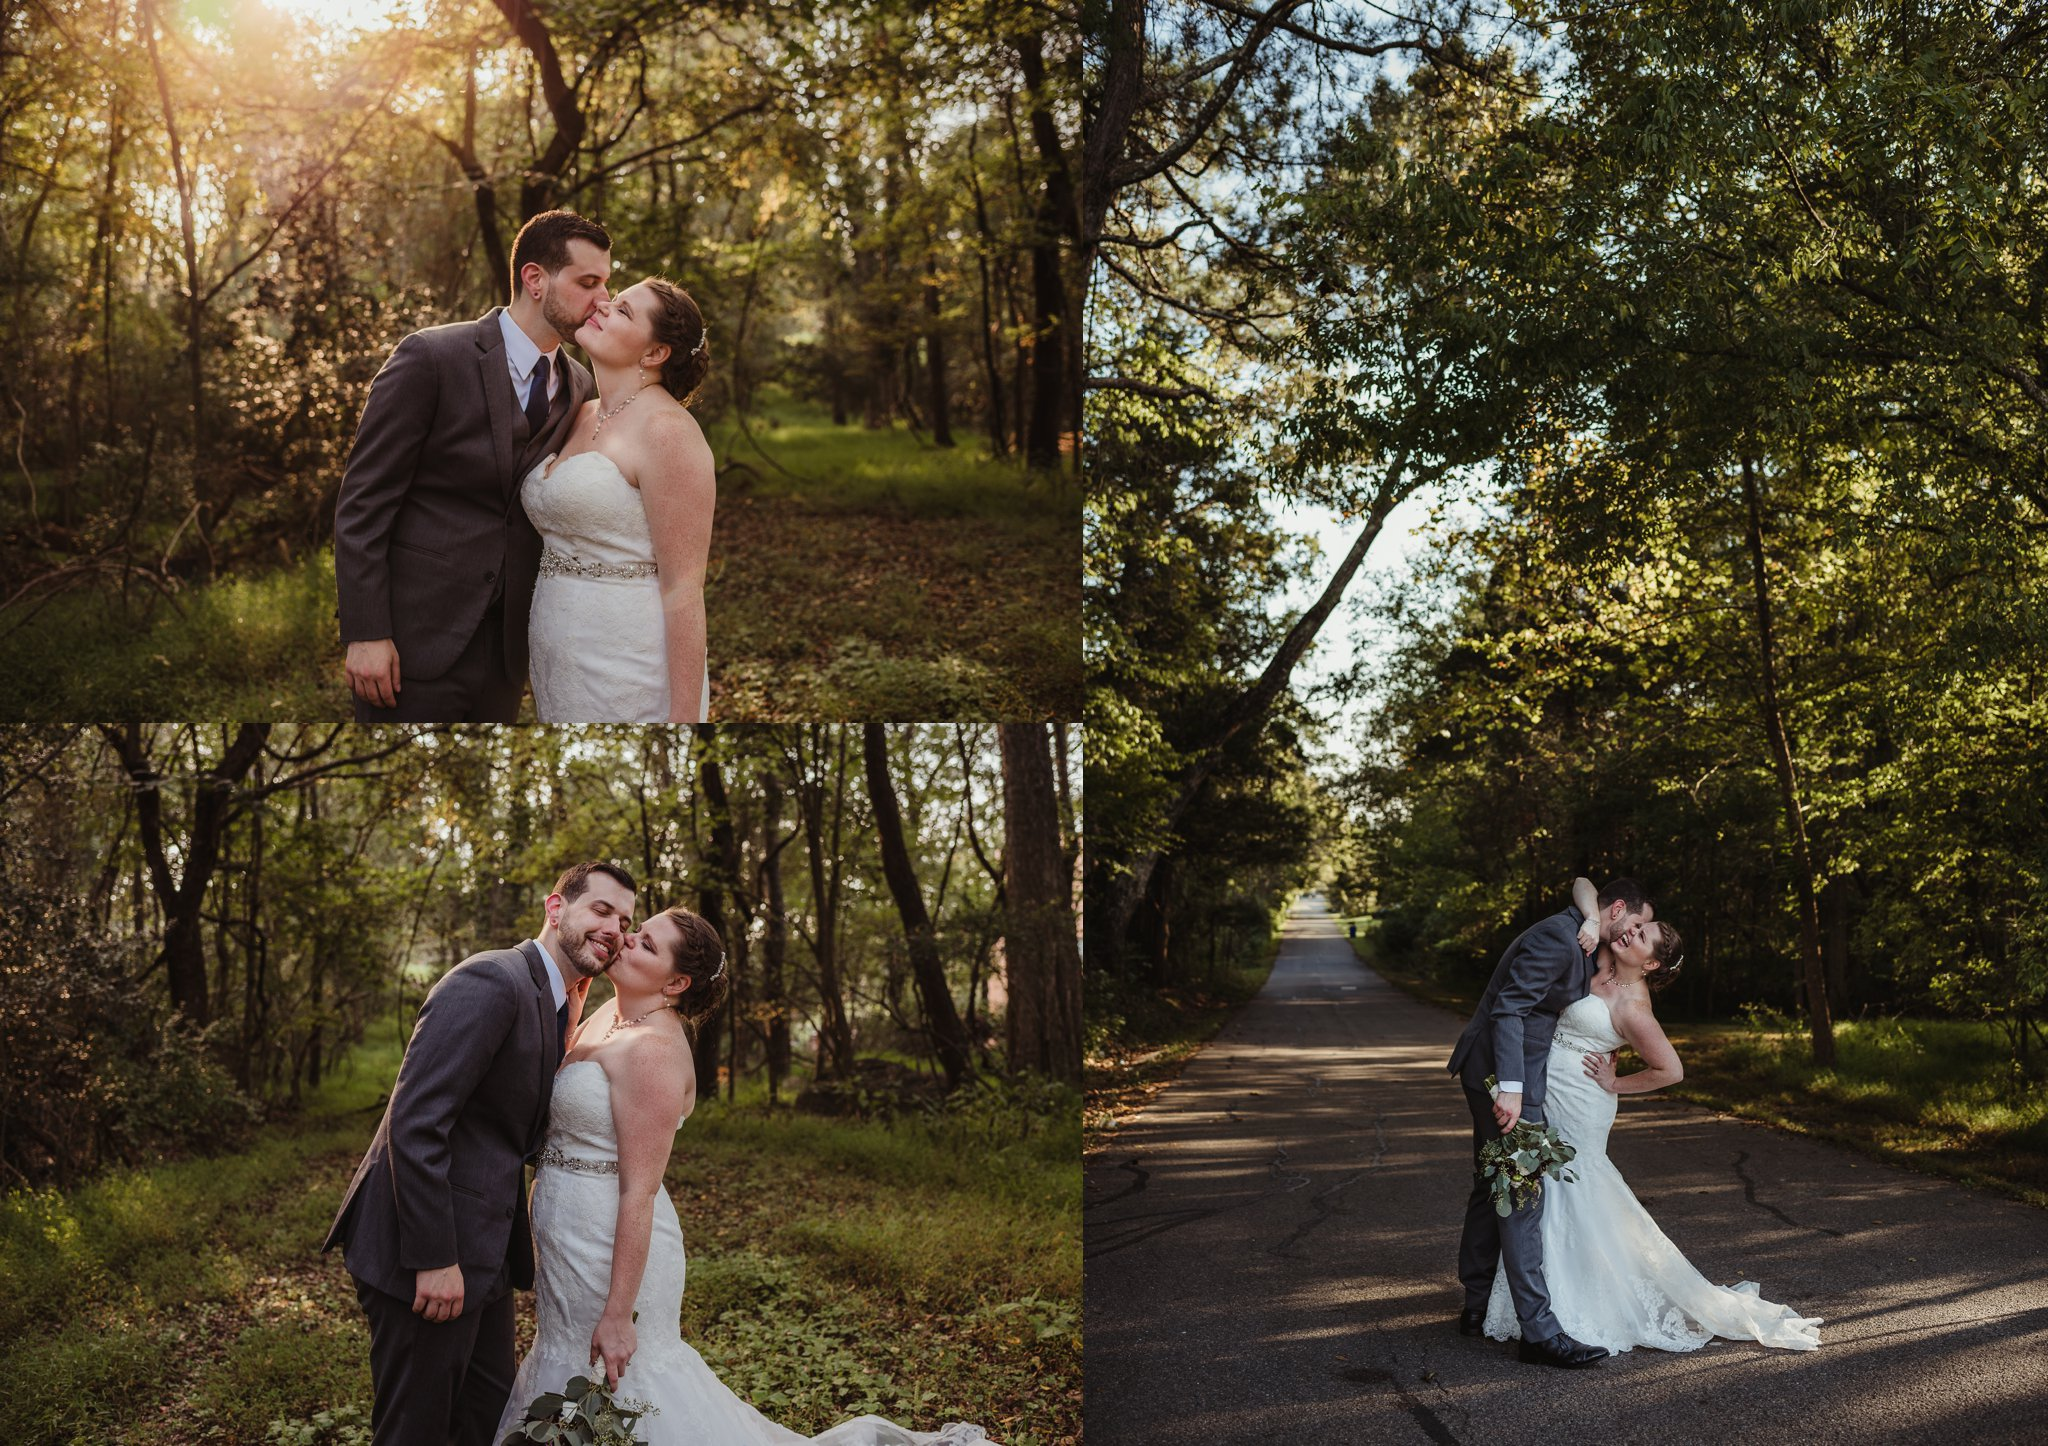 The bride and groom take portraits outside in the woods after their wedding ceremony in Raleigh, North Carolina, pictures by Rose Trail Images.